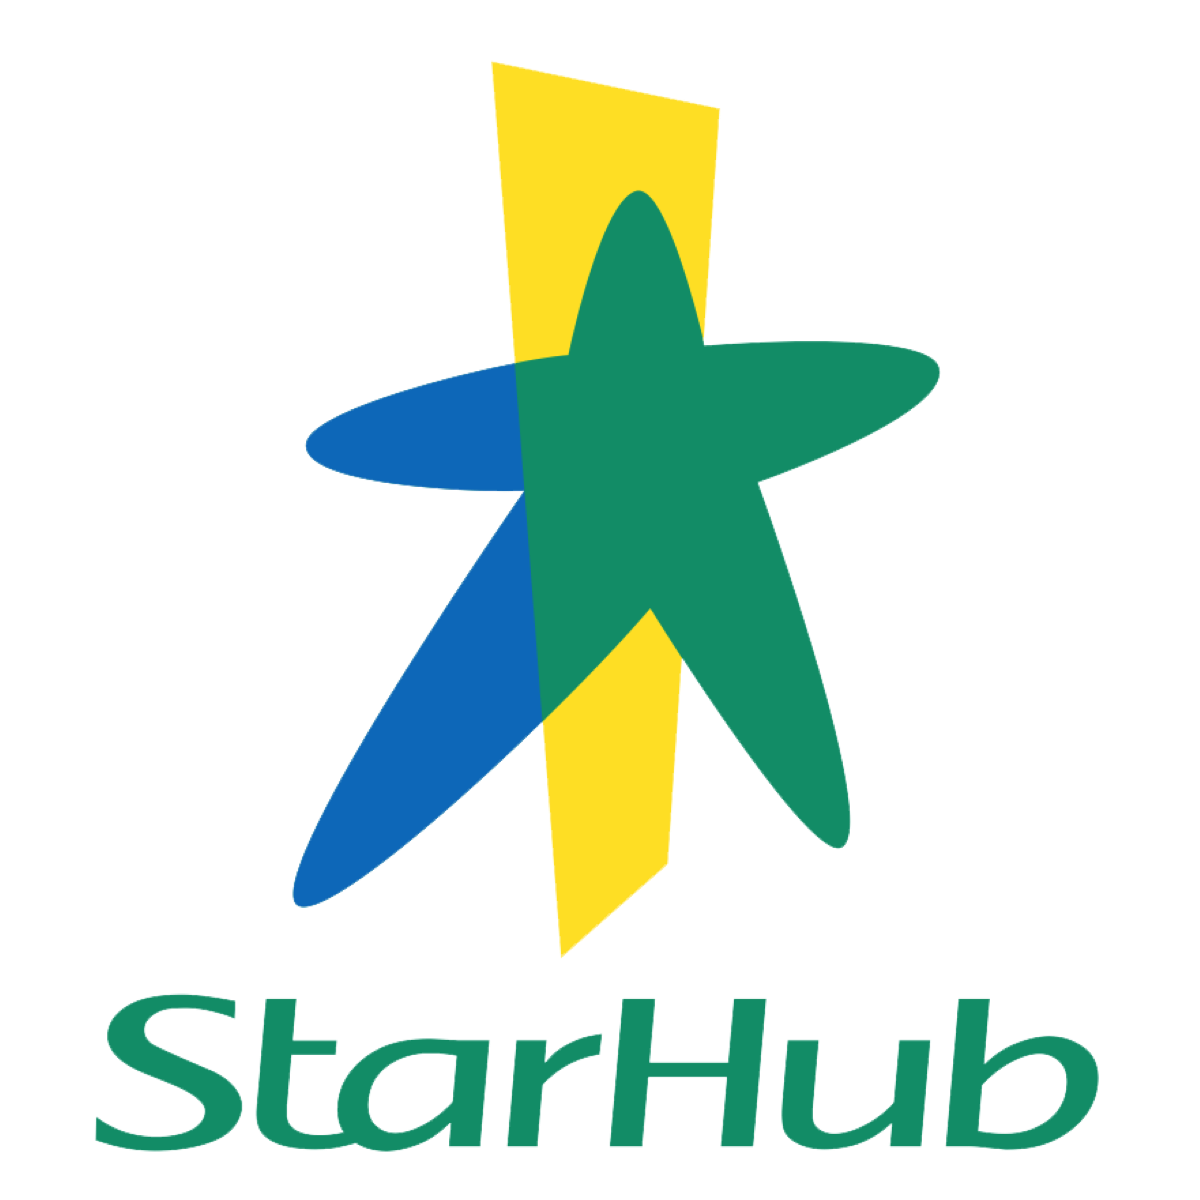 StarHub - Maybank Kim Eng Research 2018-09-05: Temasek Team Up